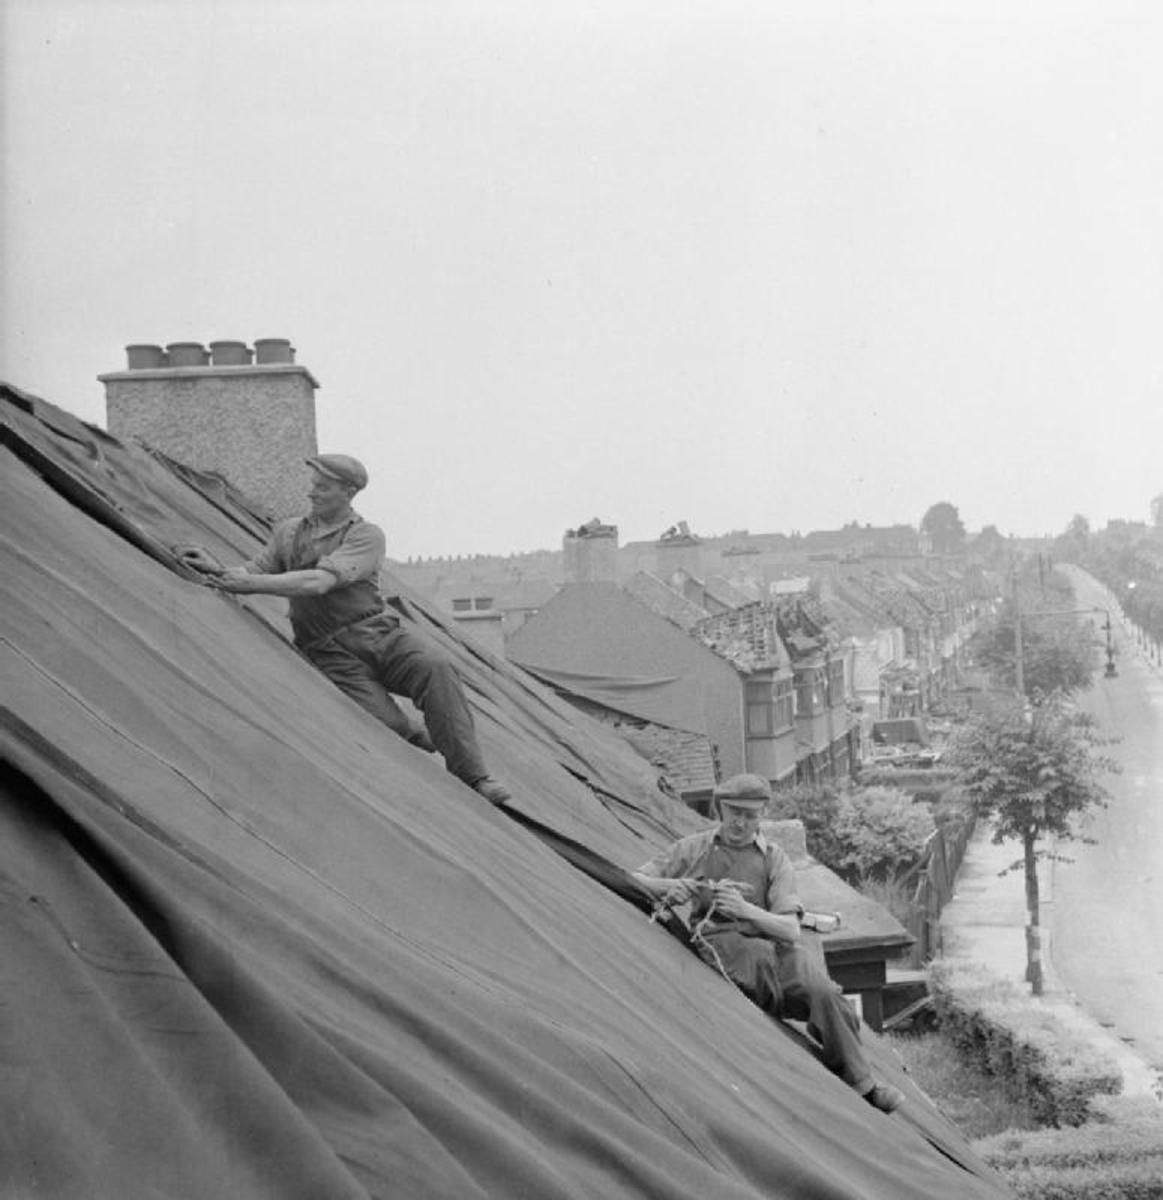 Repairing bomb damaged roofs with canvas sheet